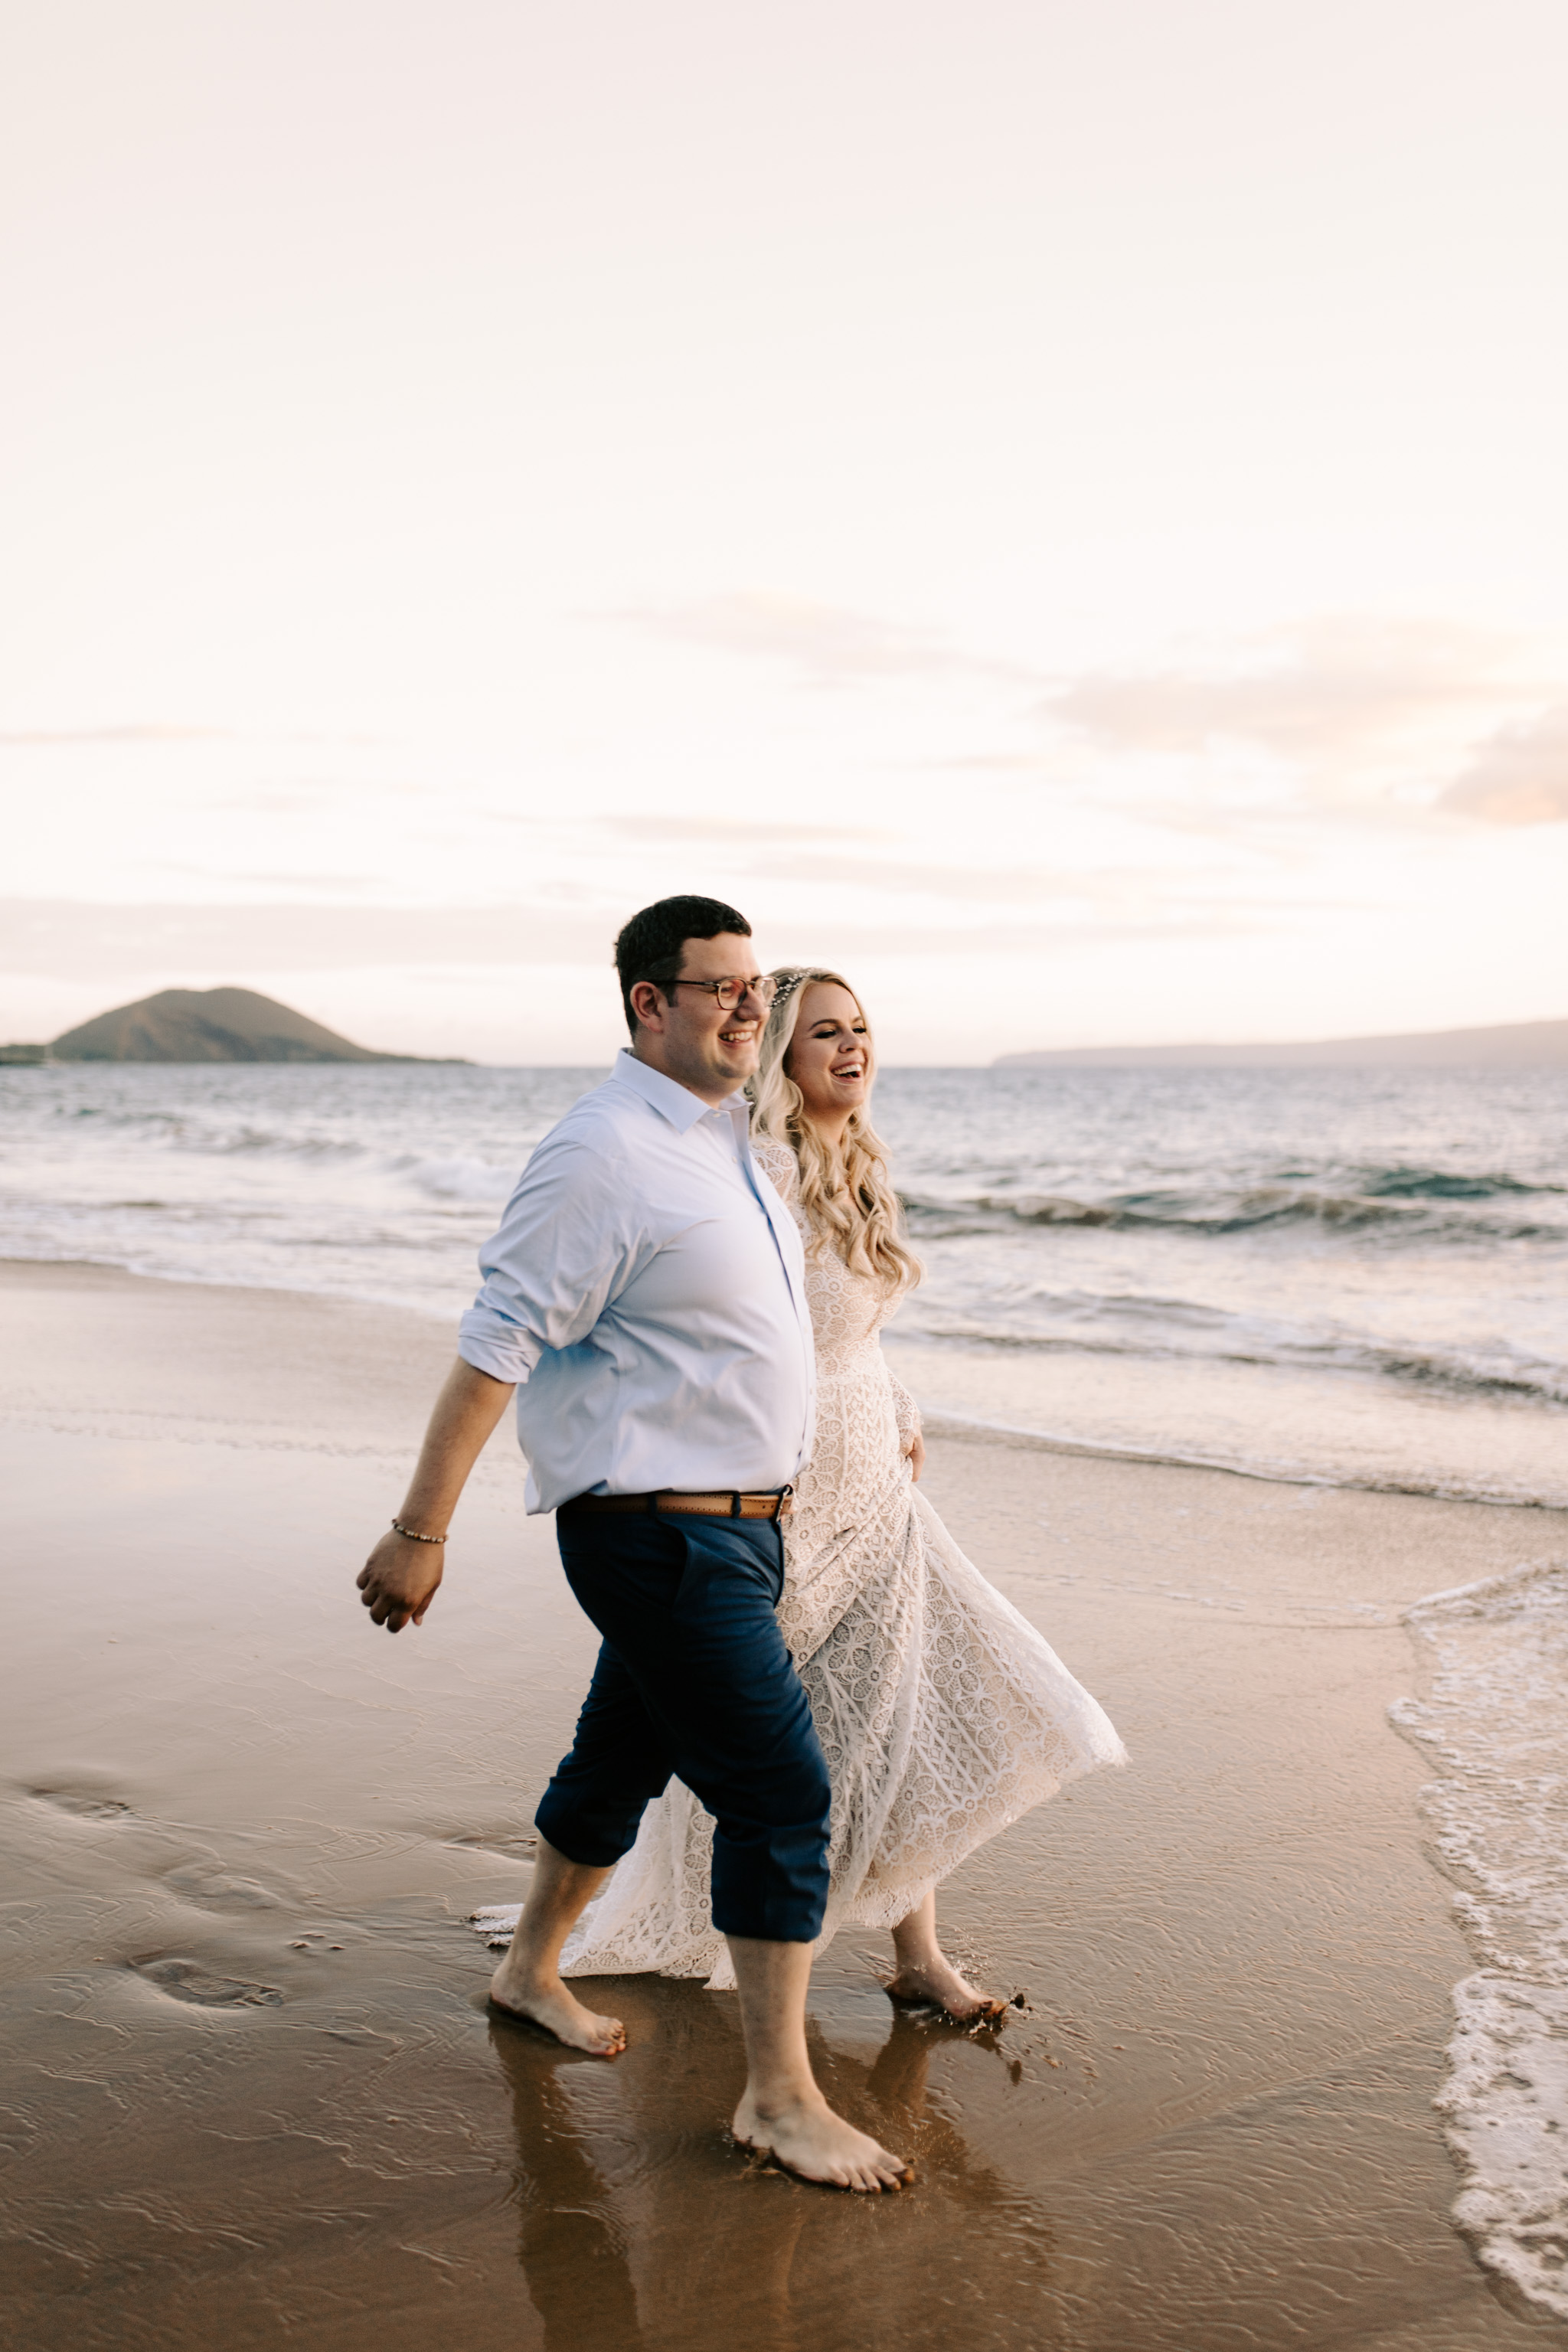 BHLDN Adelaide Gown - Andaz Maui and Puulenalena Beach Vow Renewal By Hawaii Wedding Photographer Desiree Leilani